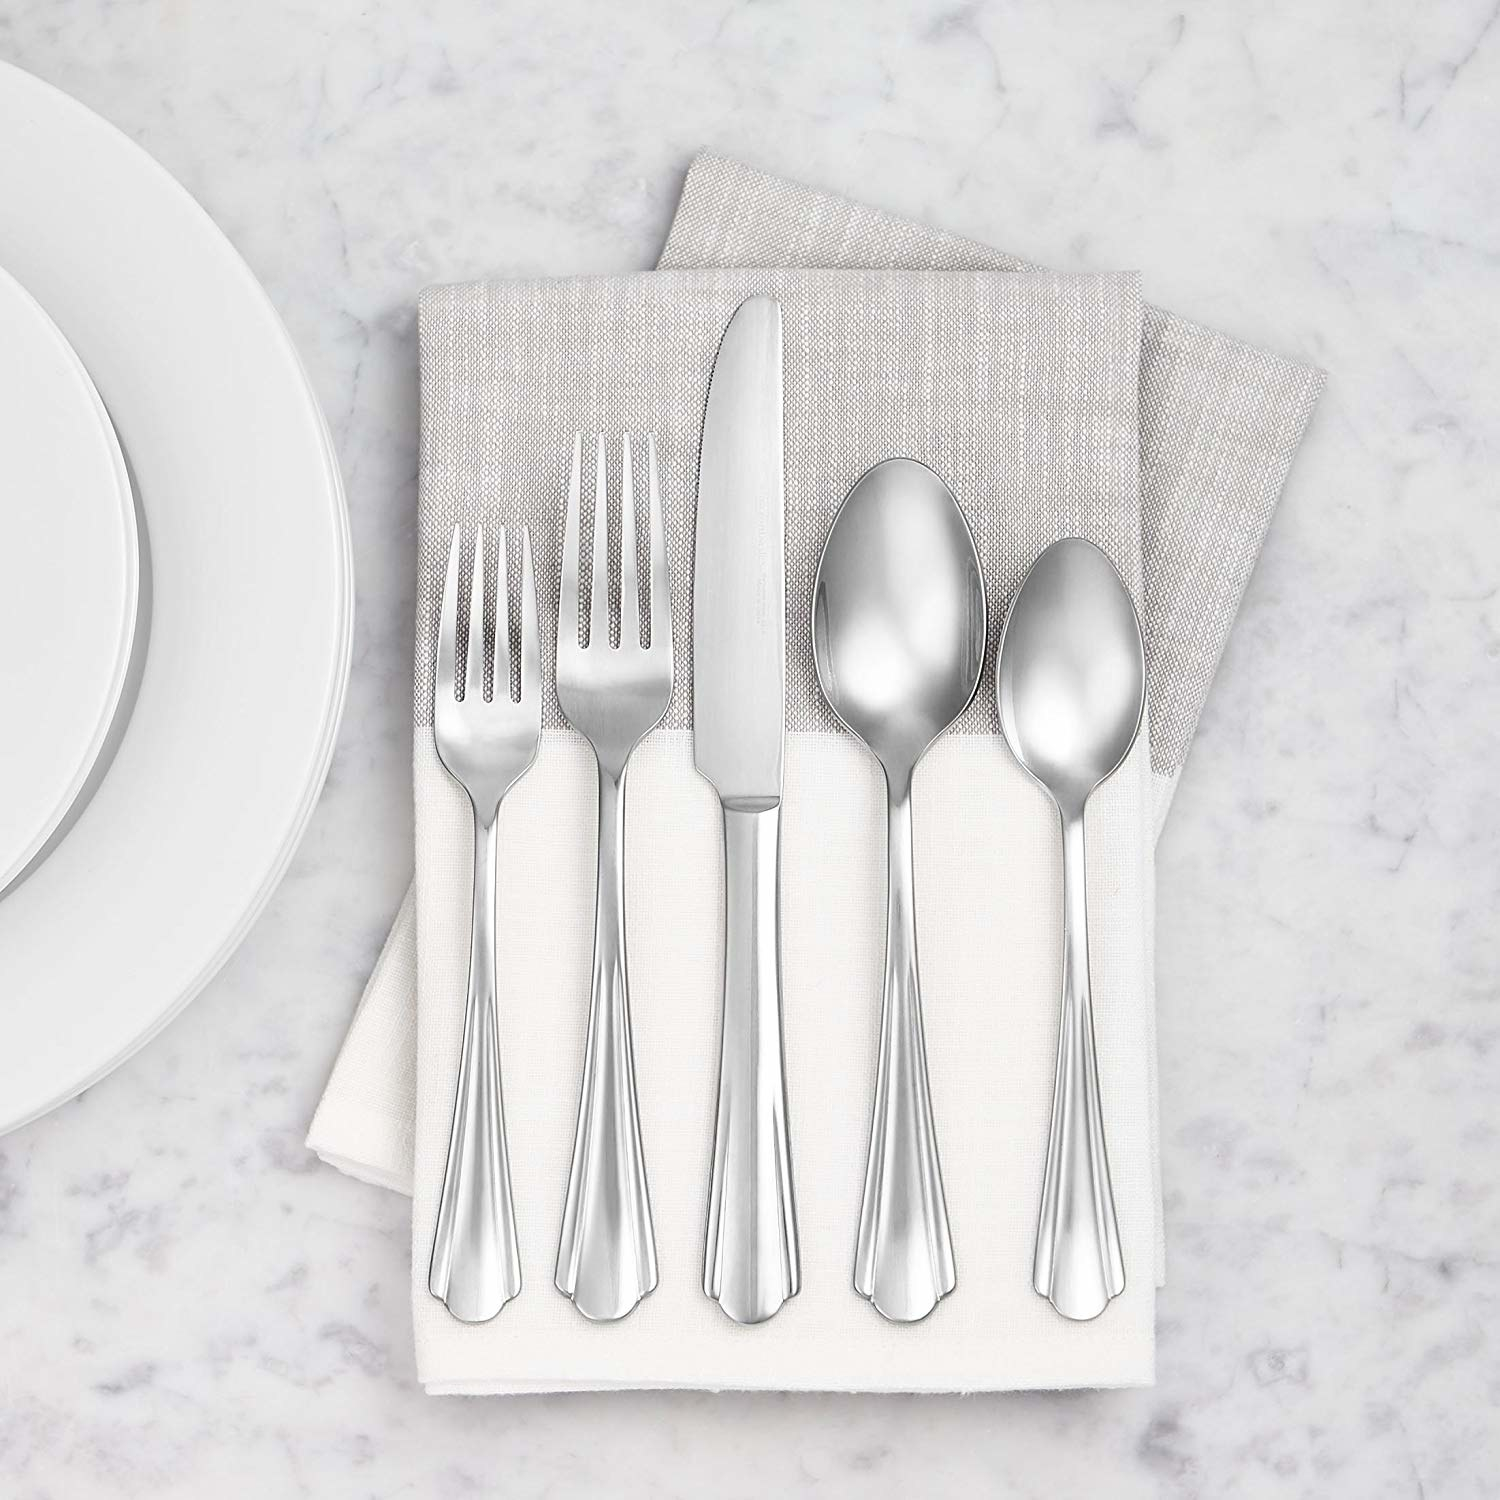 a set of silverware with scalloped edges